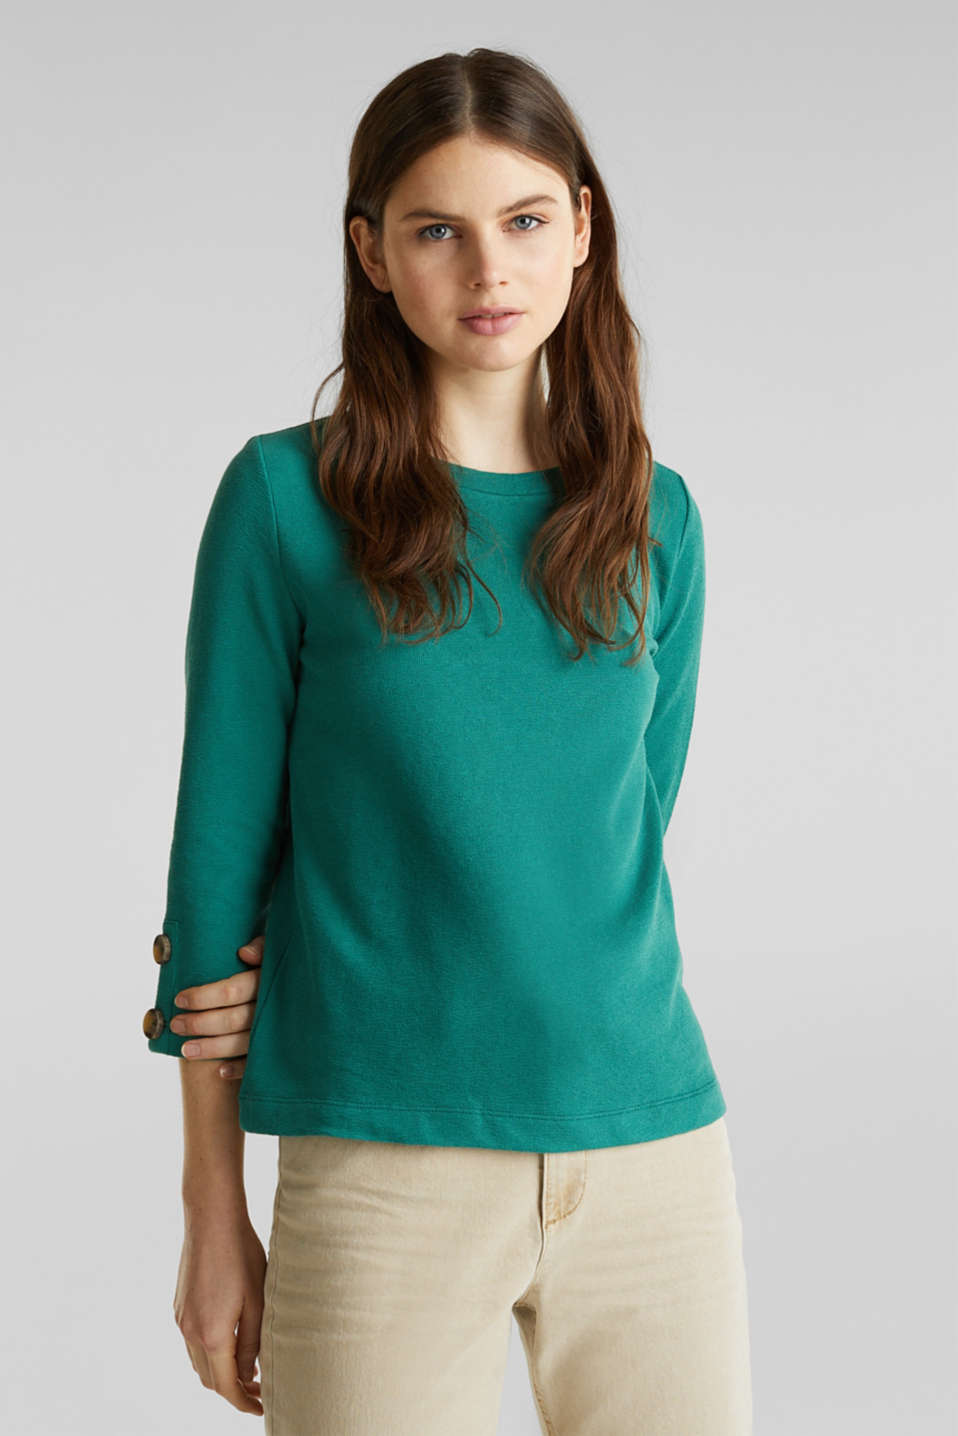 Esprit - Top with buttons, 100% cotton